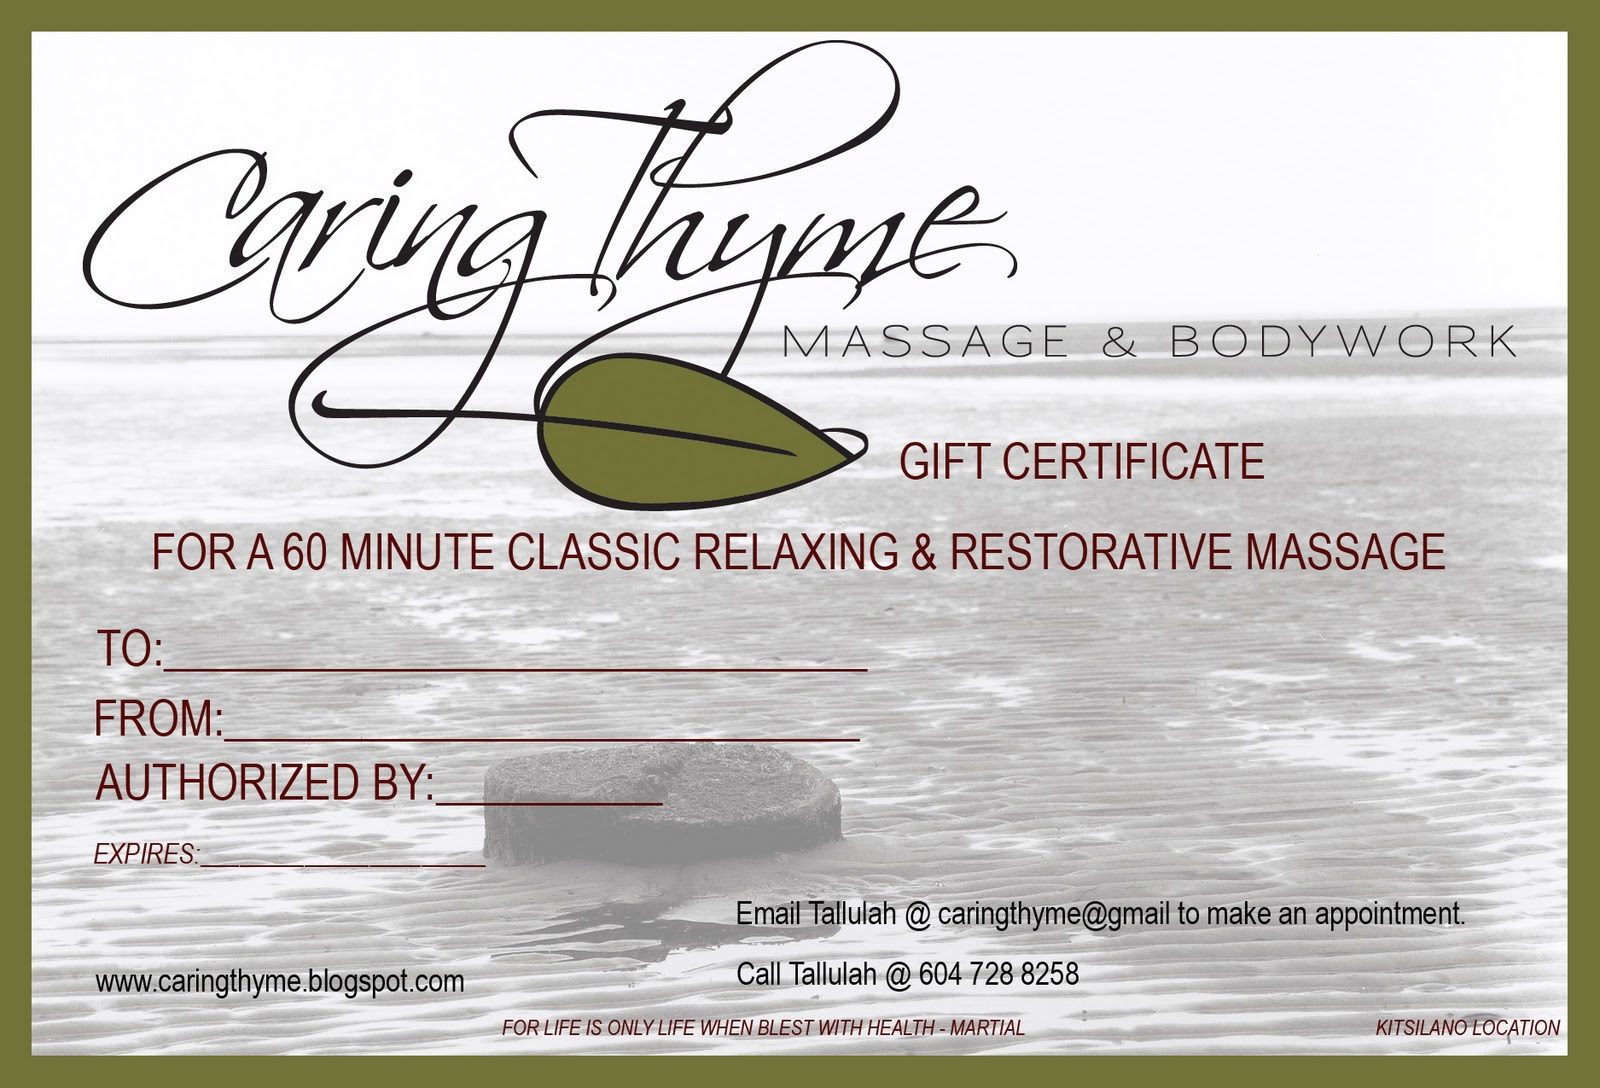 Caringthyme massage bodywork for Massage gift certificate template